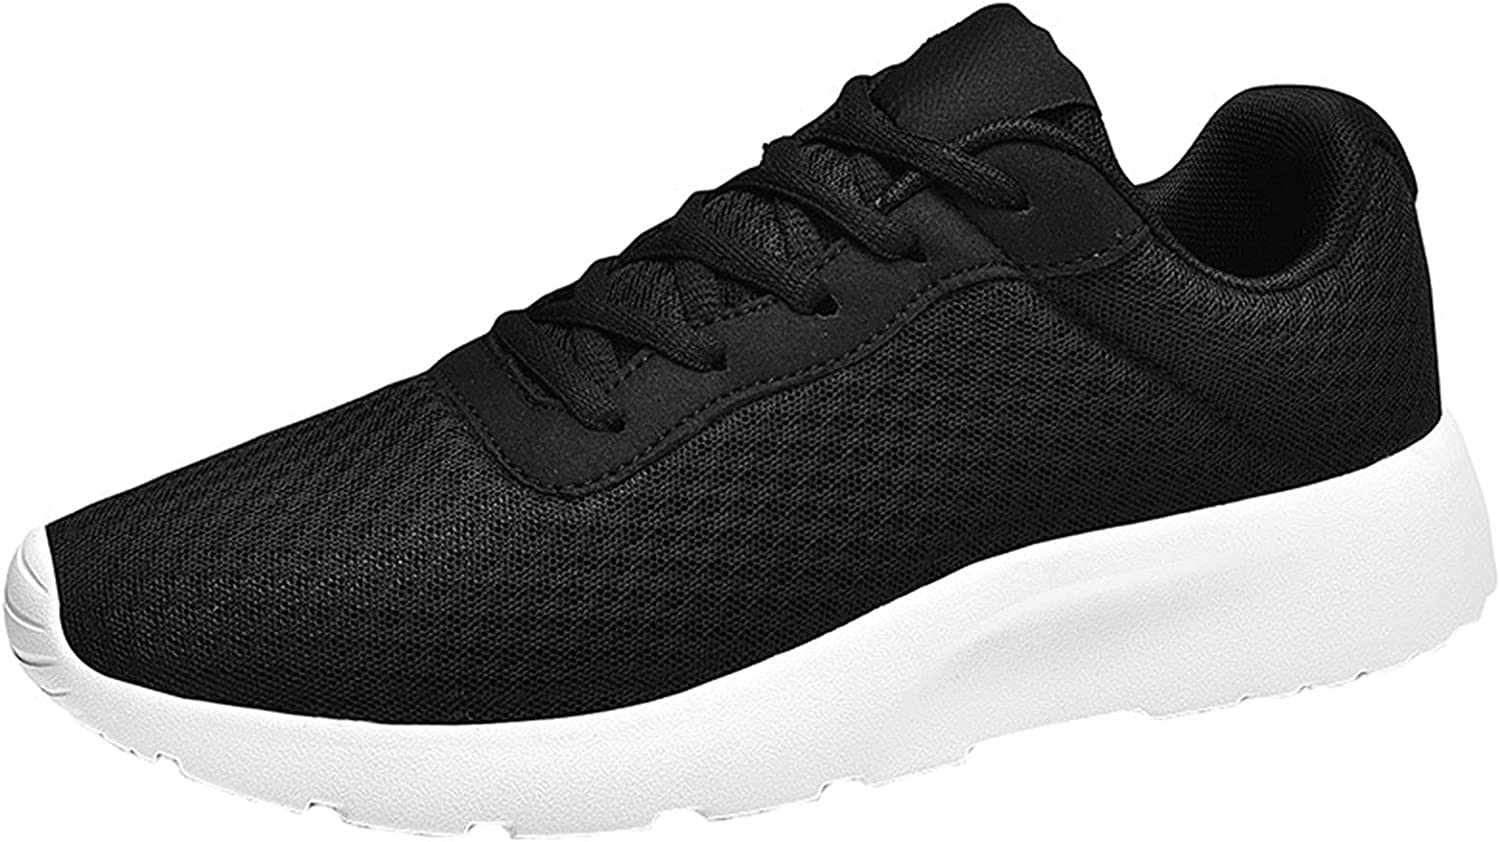 Adeliber New Women Sexy Shoes No-Slip Mesh Breathable Comfort Walking Couple Sneakers Fashion Women Outdoor Suede Casual Sports Shoes for Womens Runing Shoes